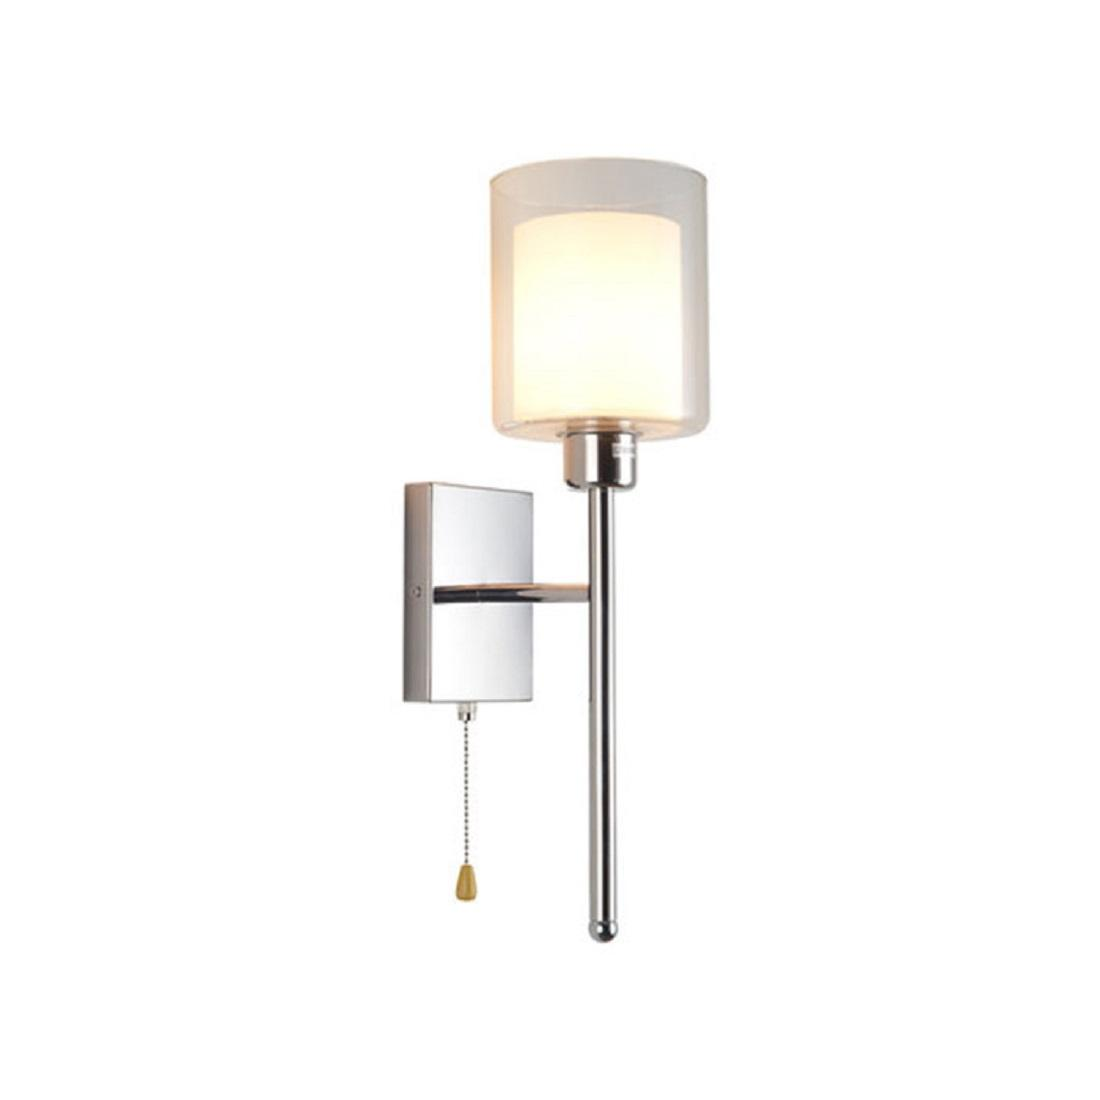 Modern art deco wall light with pull chain switch, america style chrome finish bedside wall lamp,industrial nordic sconces